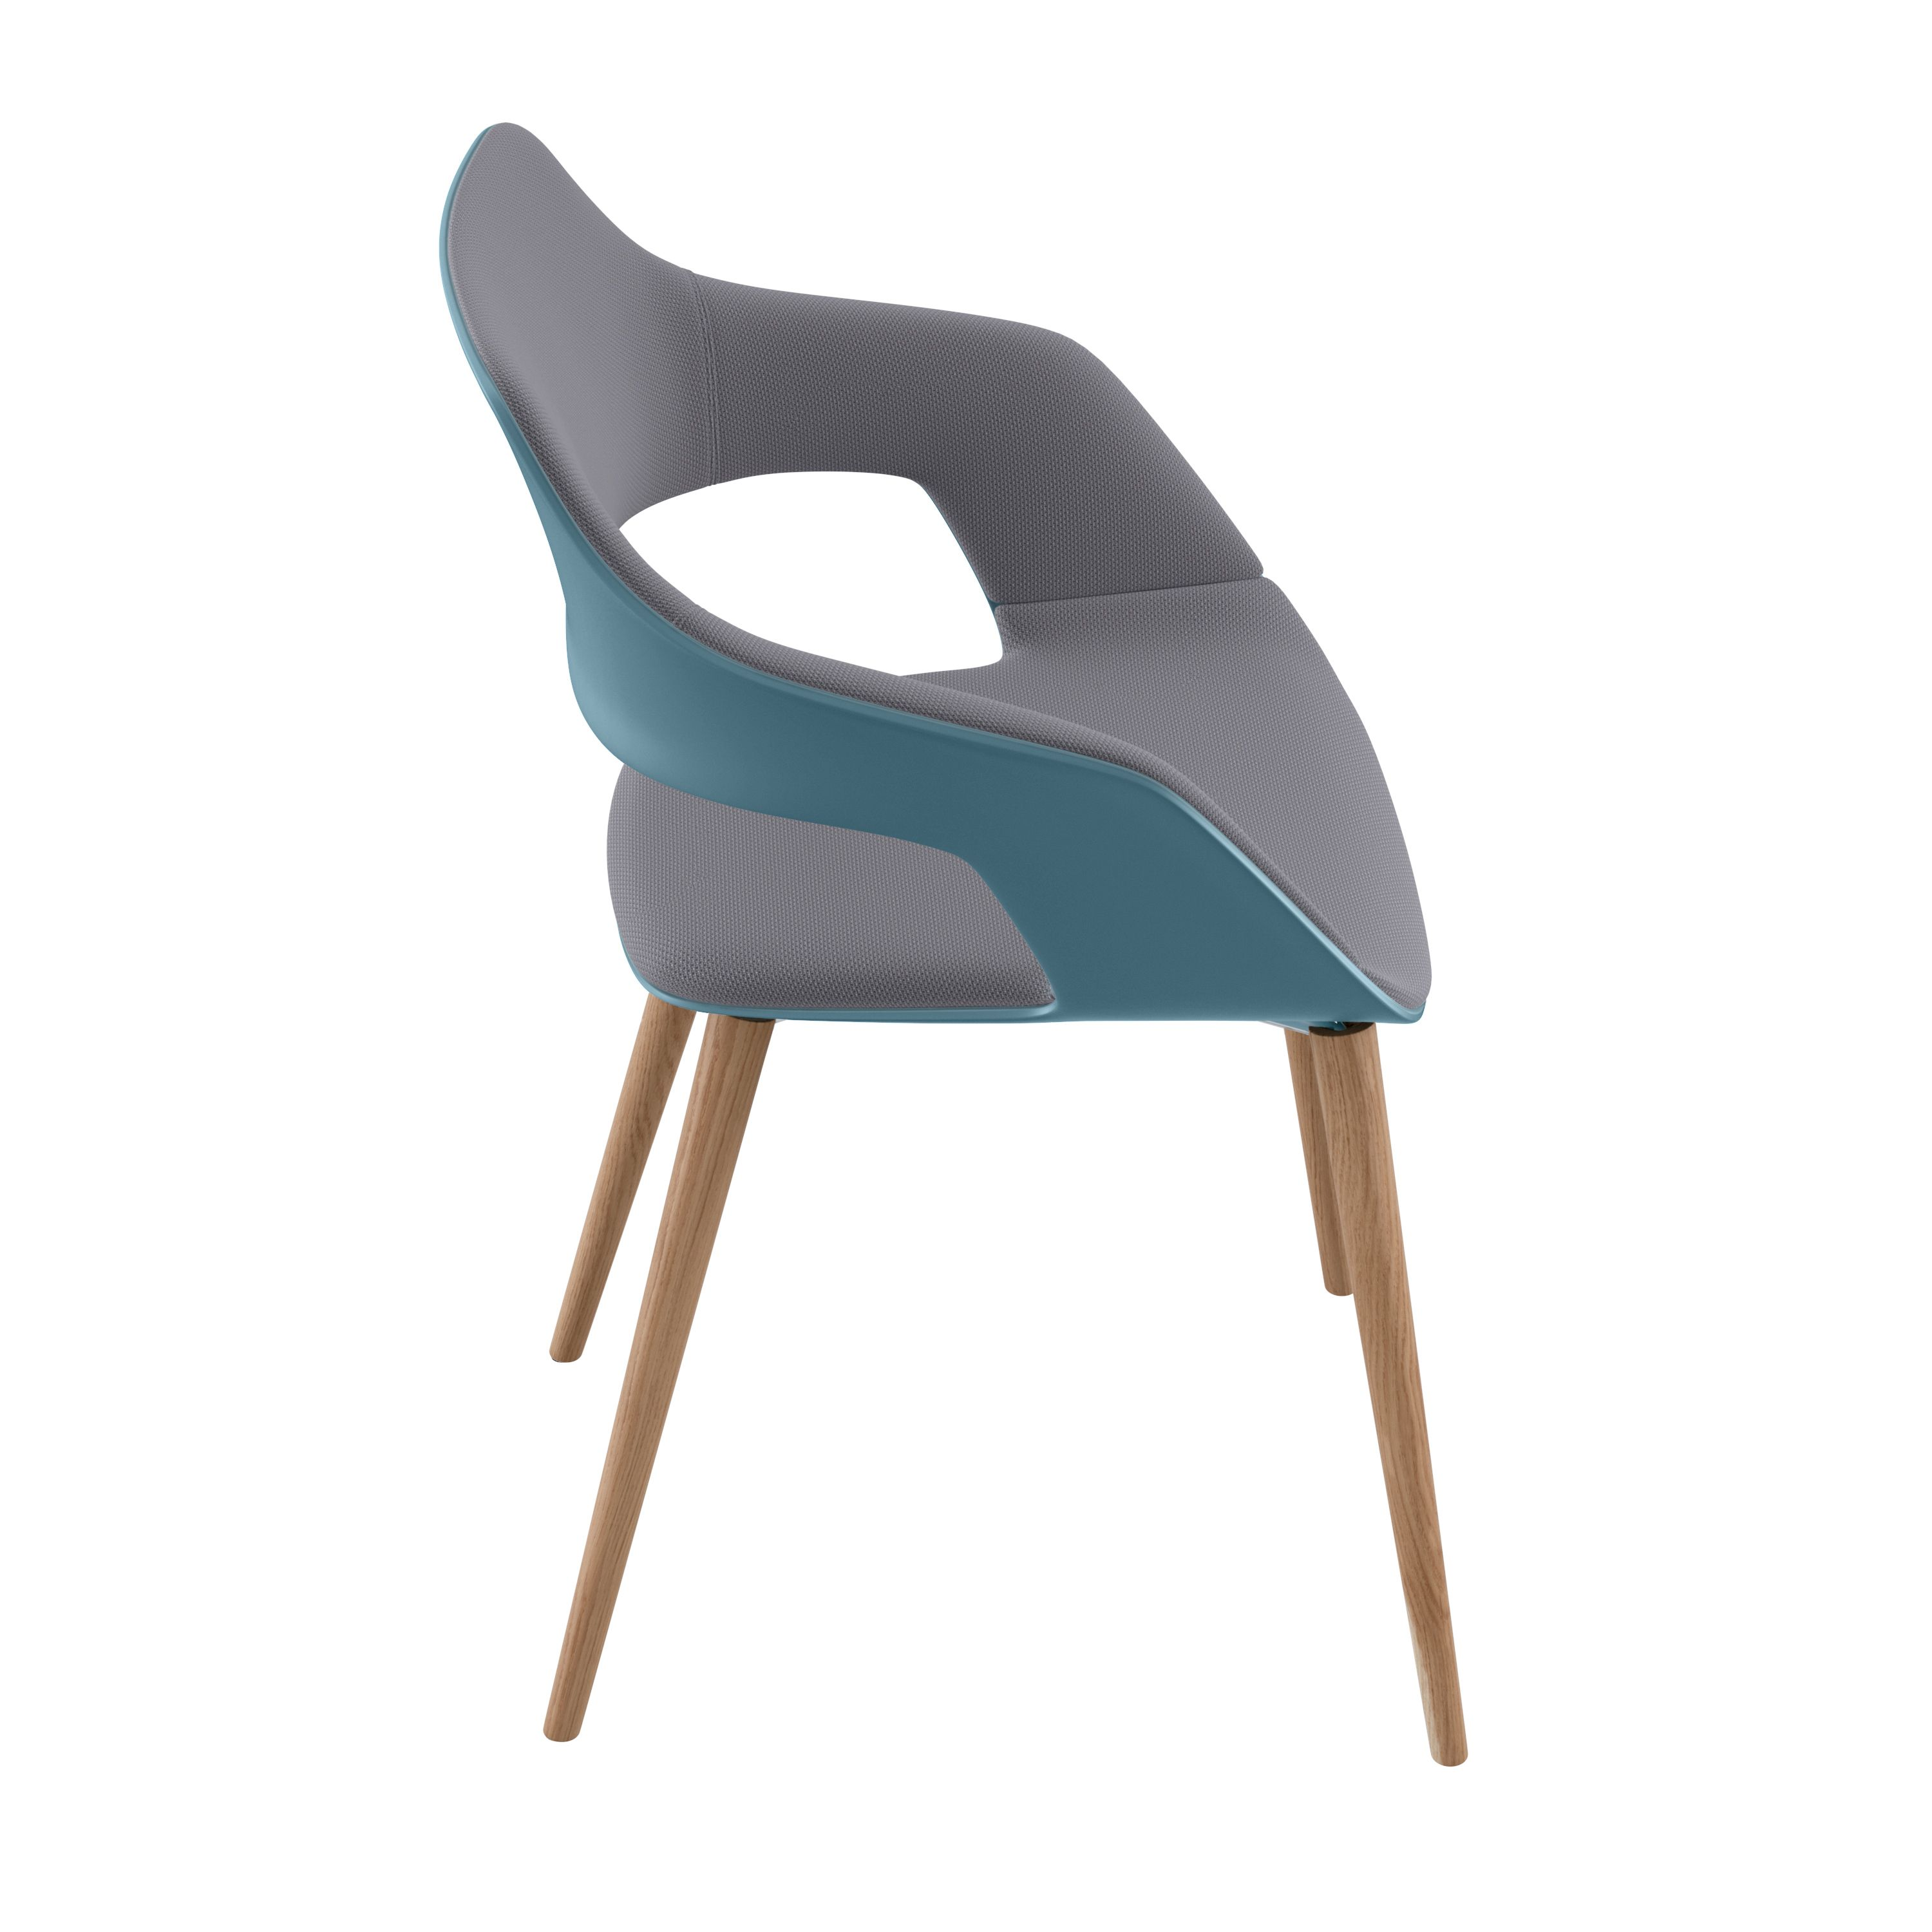 Occo Chair | Four leg chair with oak frame | Desing by jehs+laub ...